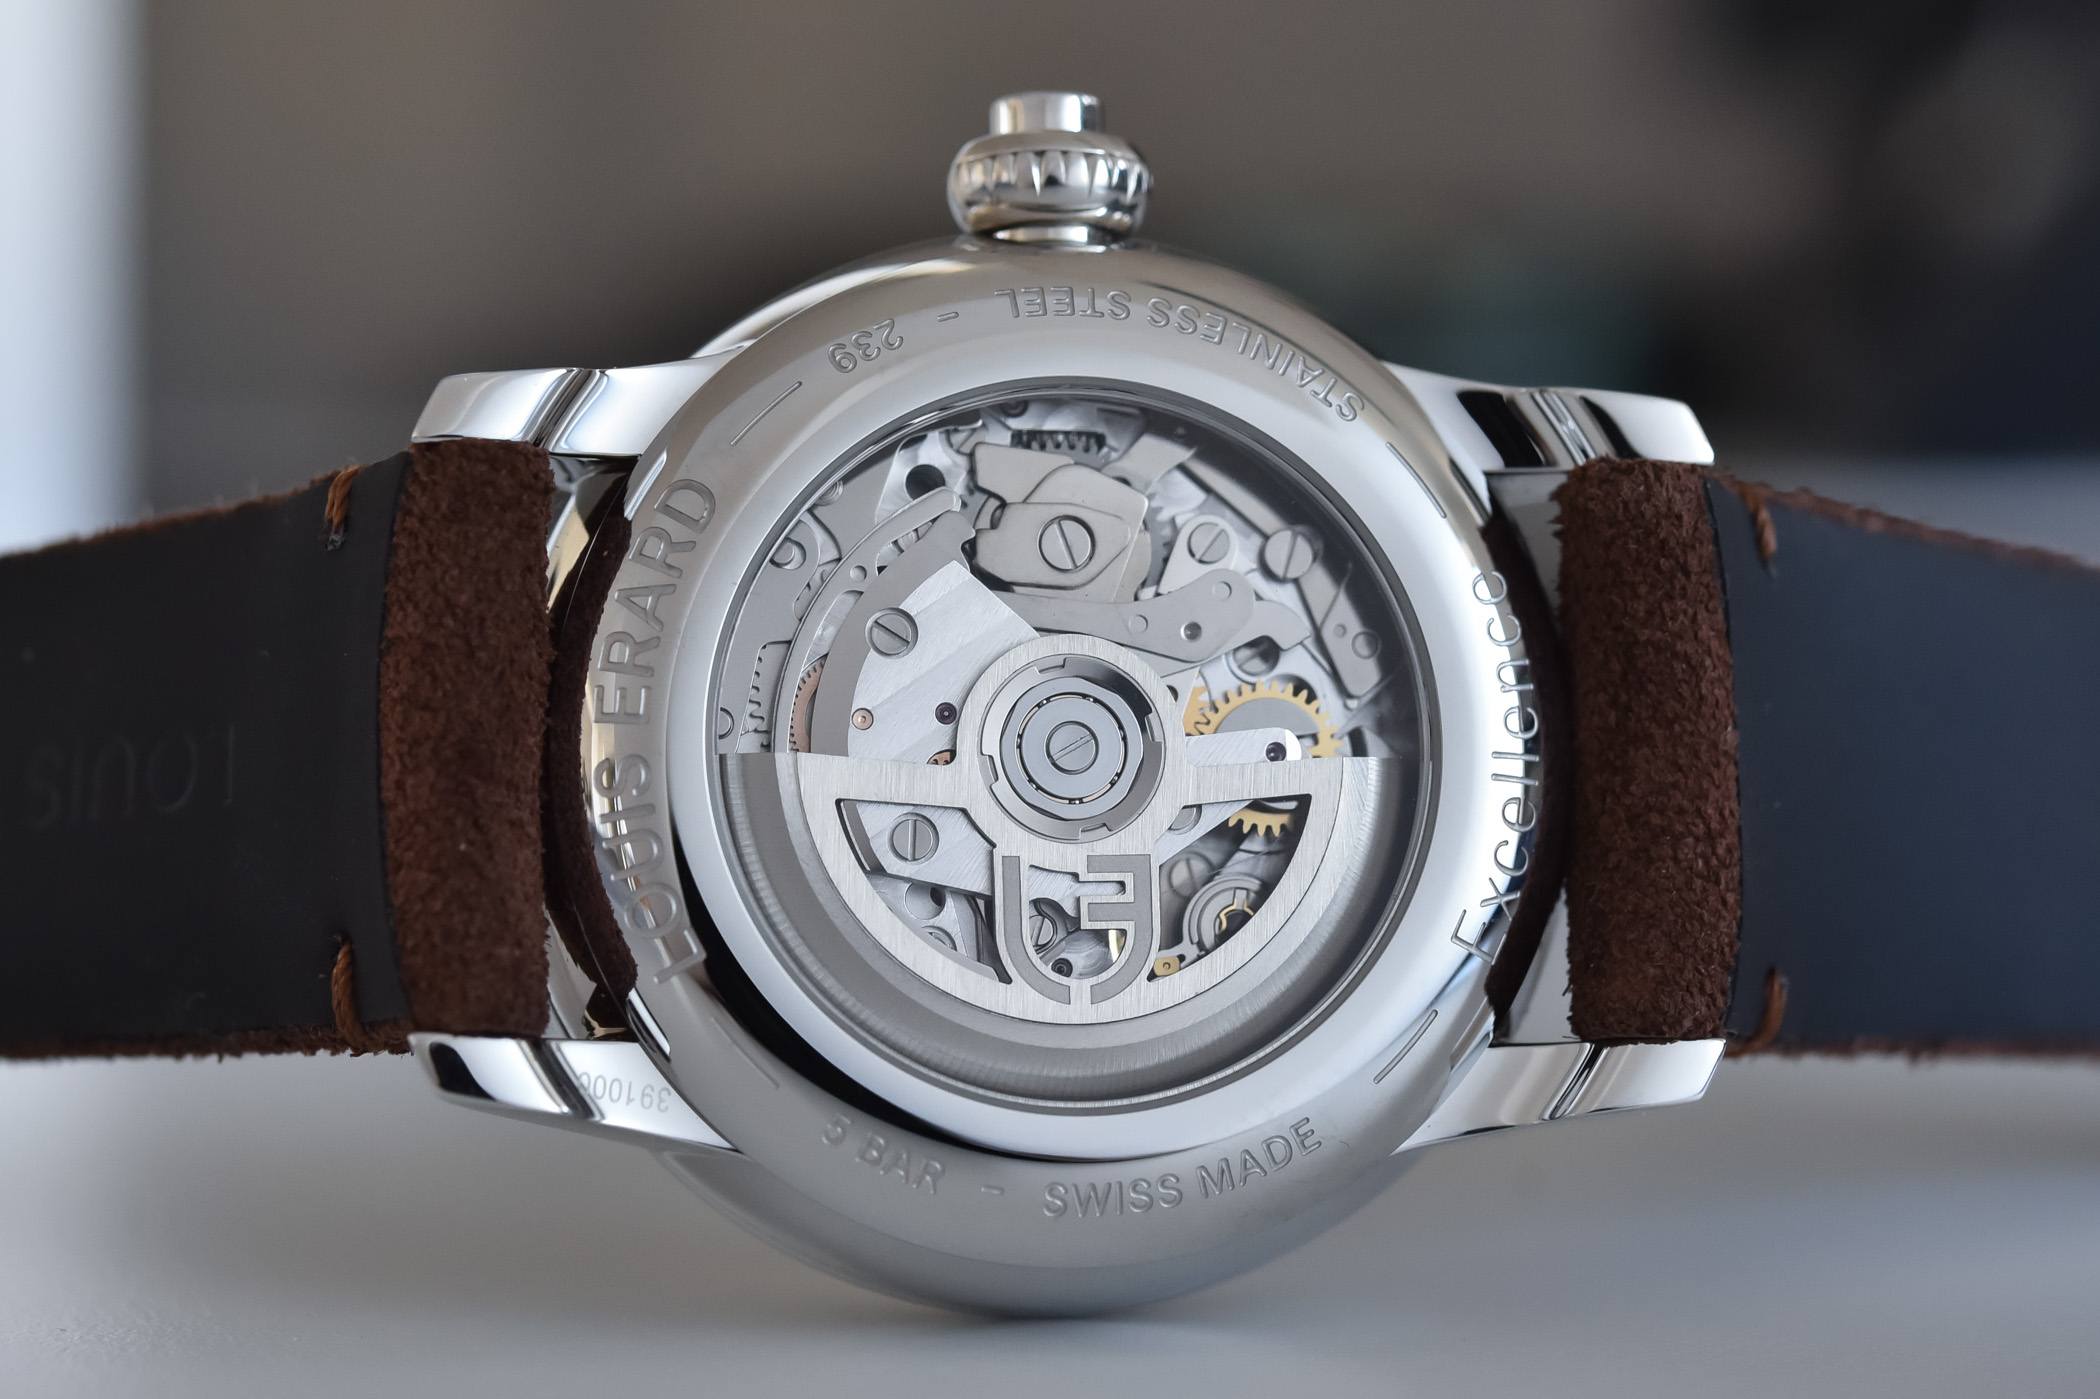 Louis Erard Excellence chronograph monopoussoir - review - 2